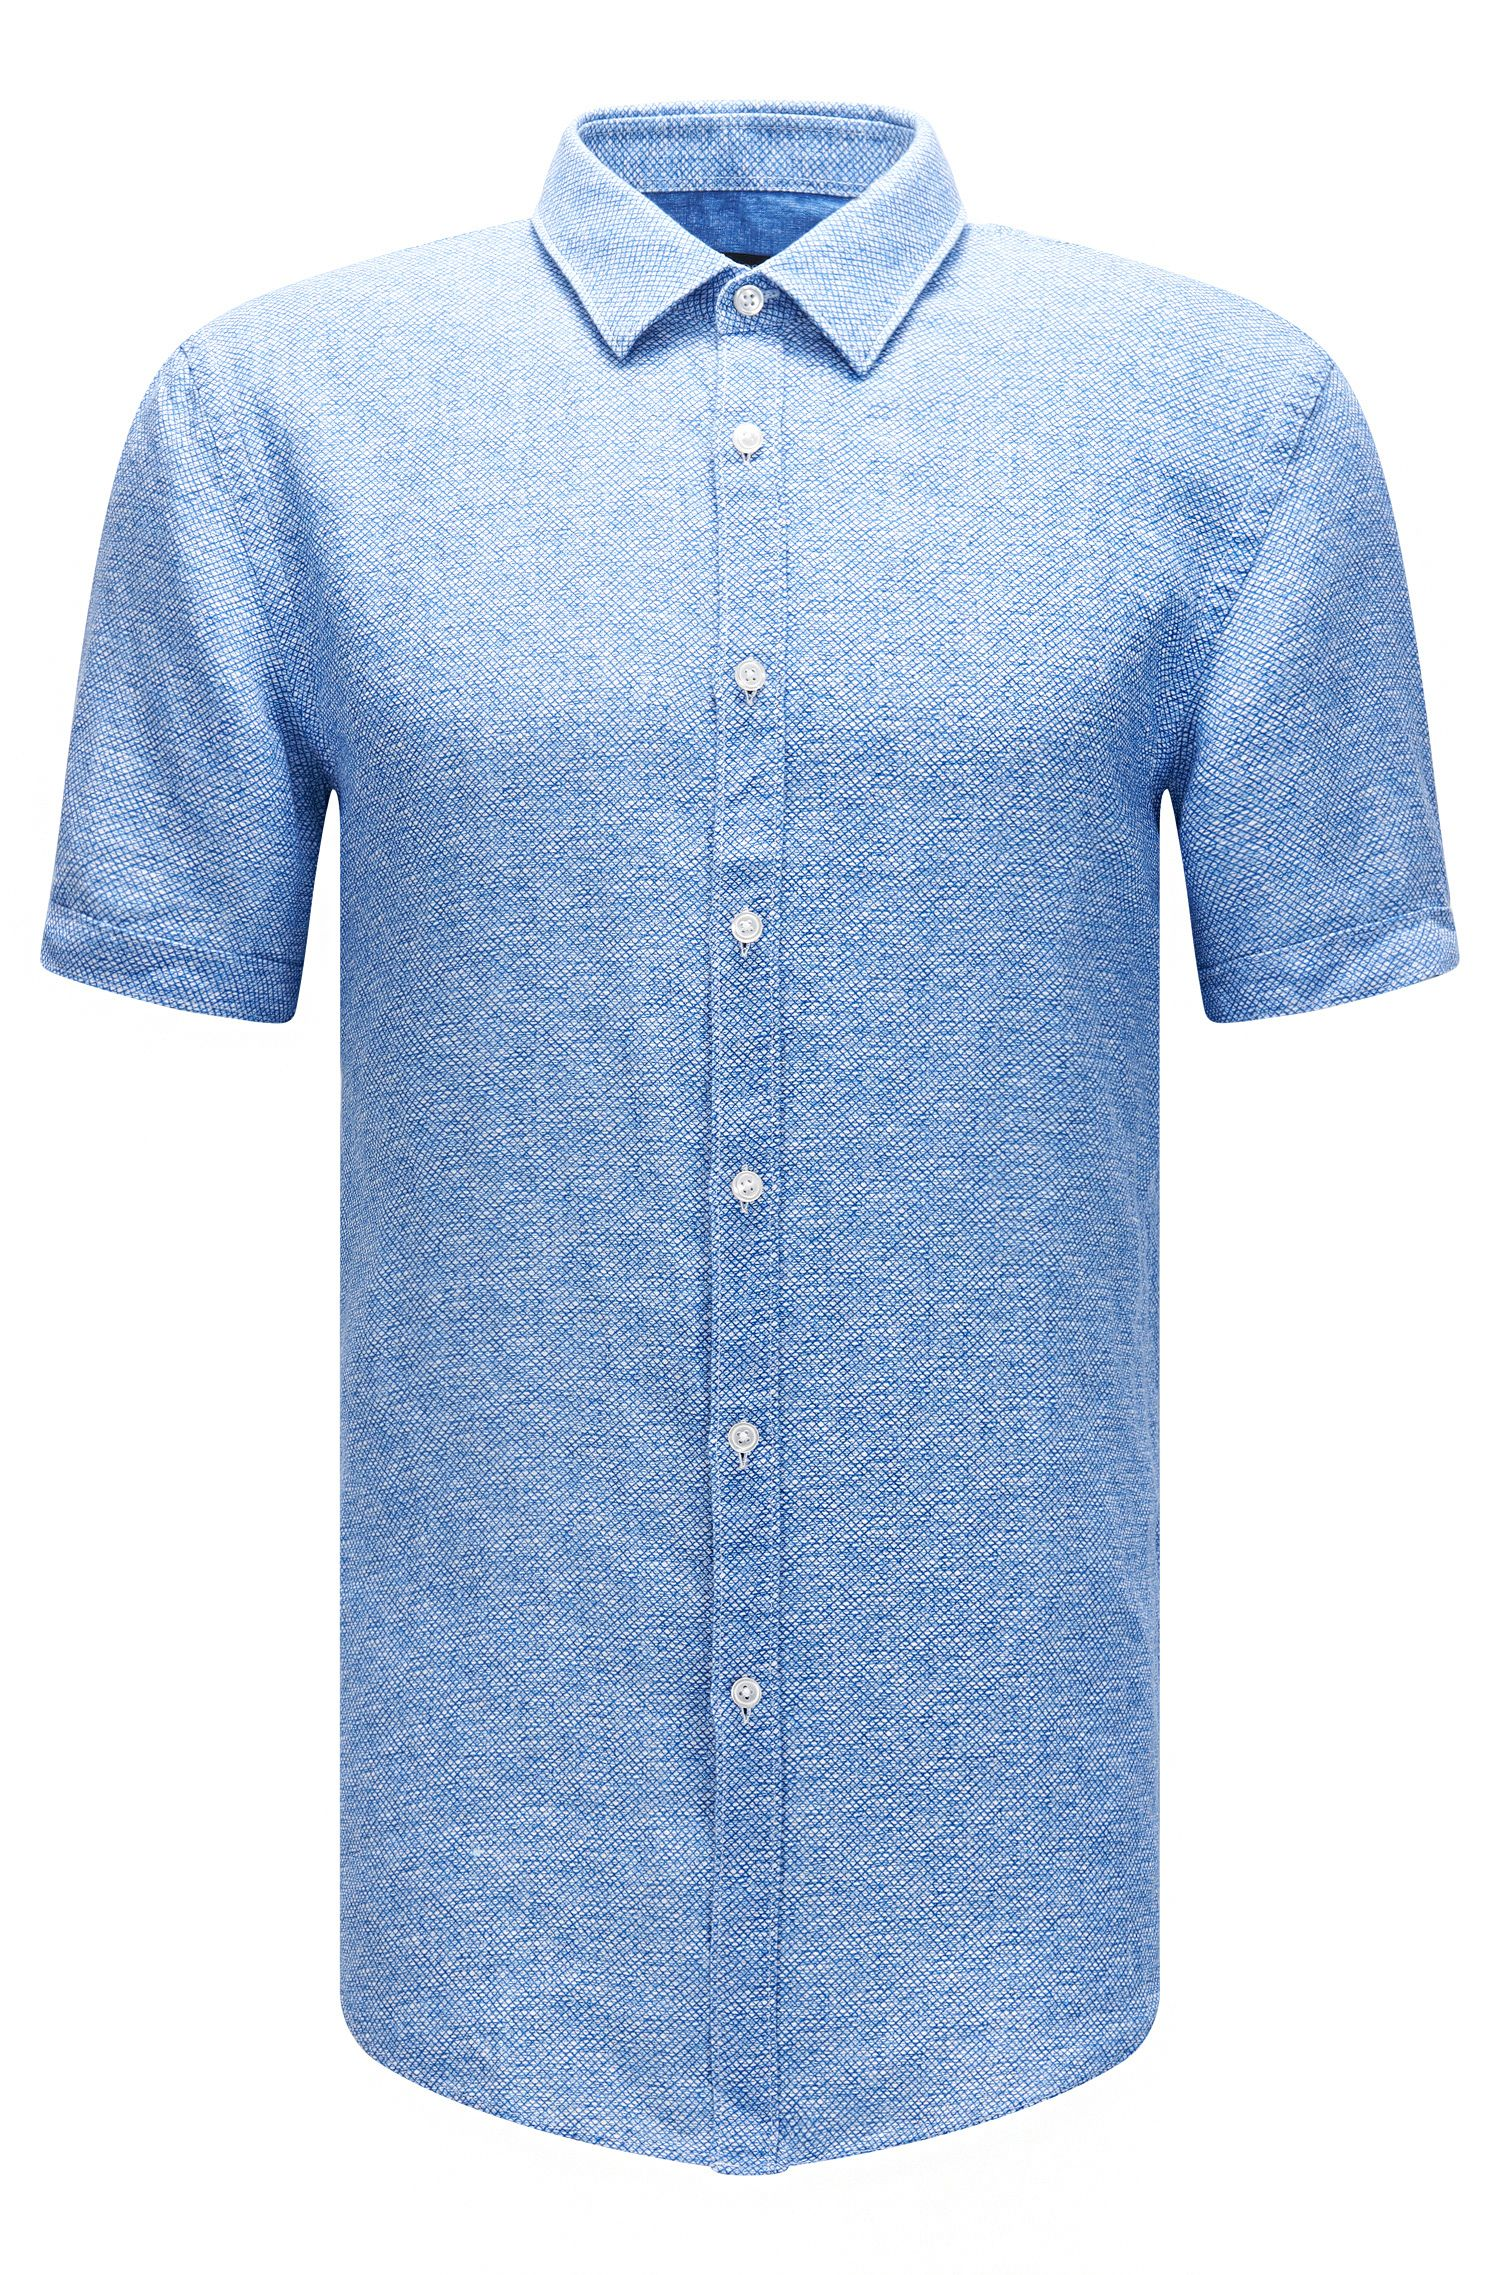 Linen Garment-Washed Button Down Shirt, Slim Fit | Ronn